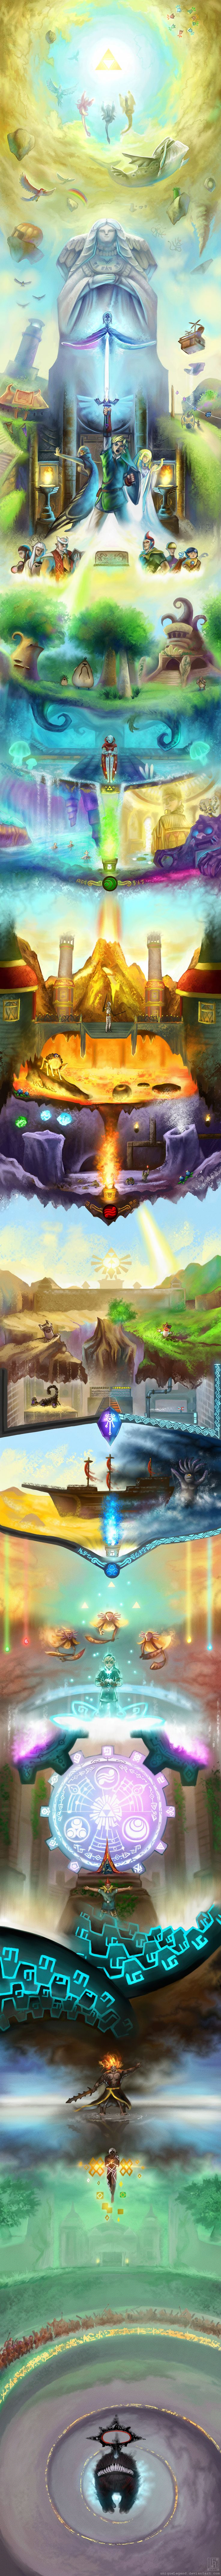 The Legend of Zelda - Skyward Sword by =uniqueLegend on deviantART